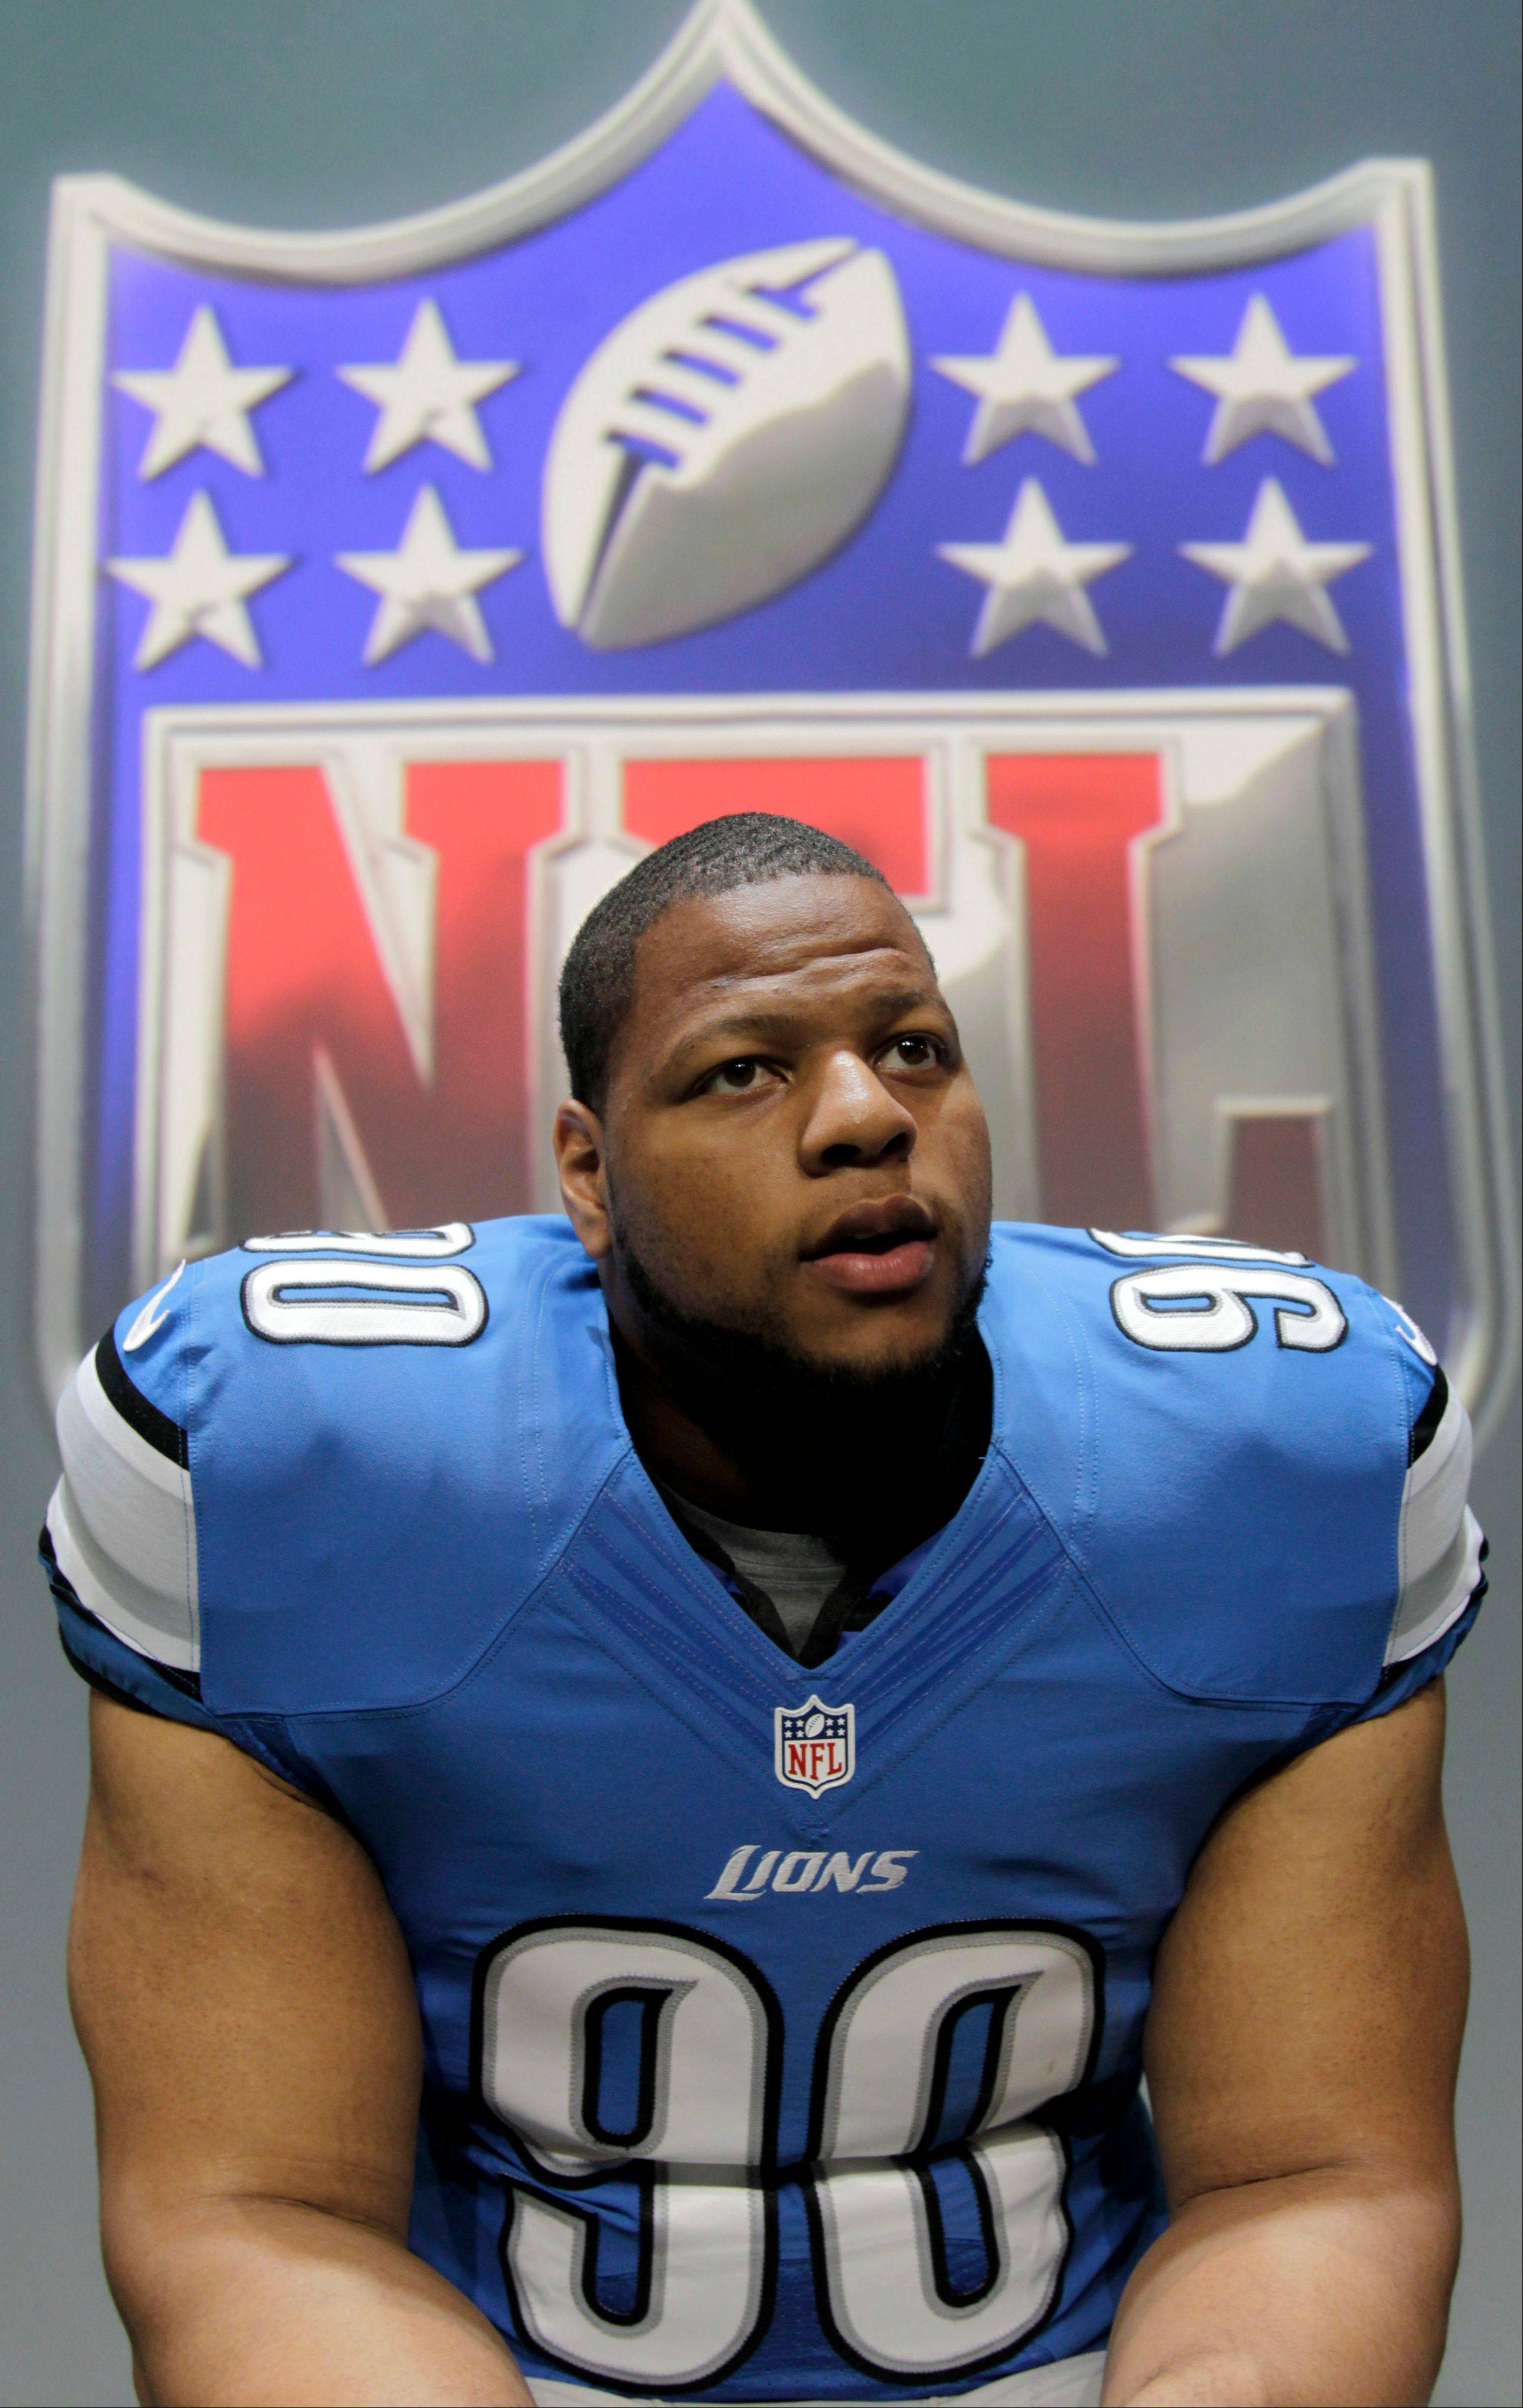 Detroit Lions' Ndamukong Suh talks to a reporter during a presentation in New York, Tuesday, April 3, 2012. The NFL and Nike showed off the new gear in grand style with a gridiron-themed fashion show at a Brooklyn film studio.